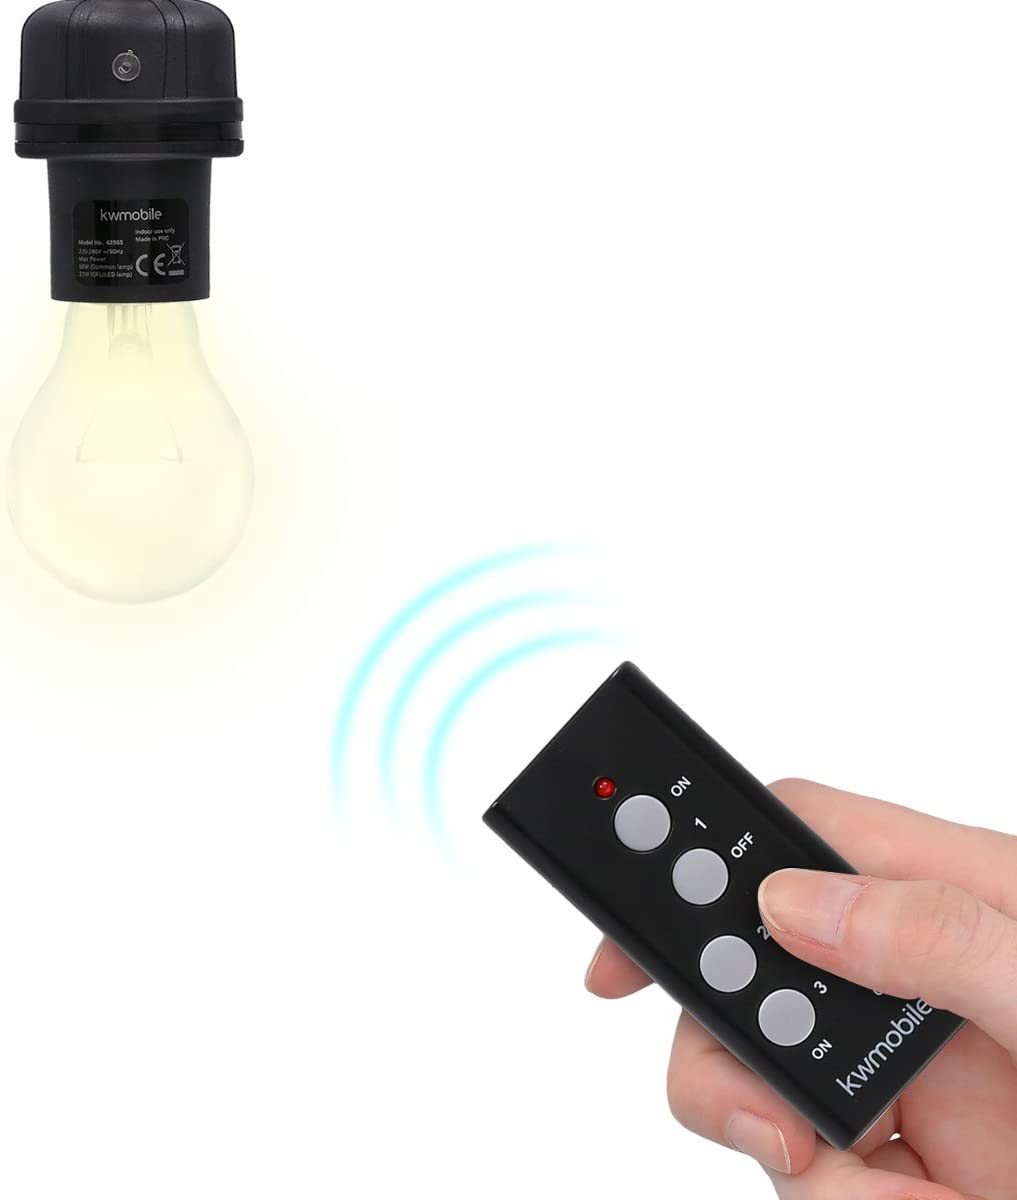 E 27 Lamps Socket Remote Switch Set for LED and Energy Saving Lamps Black kwmobile 3X Wireless E27 lamp Socket 30m Range with Remote Control